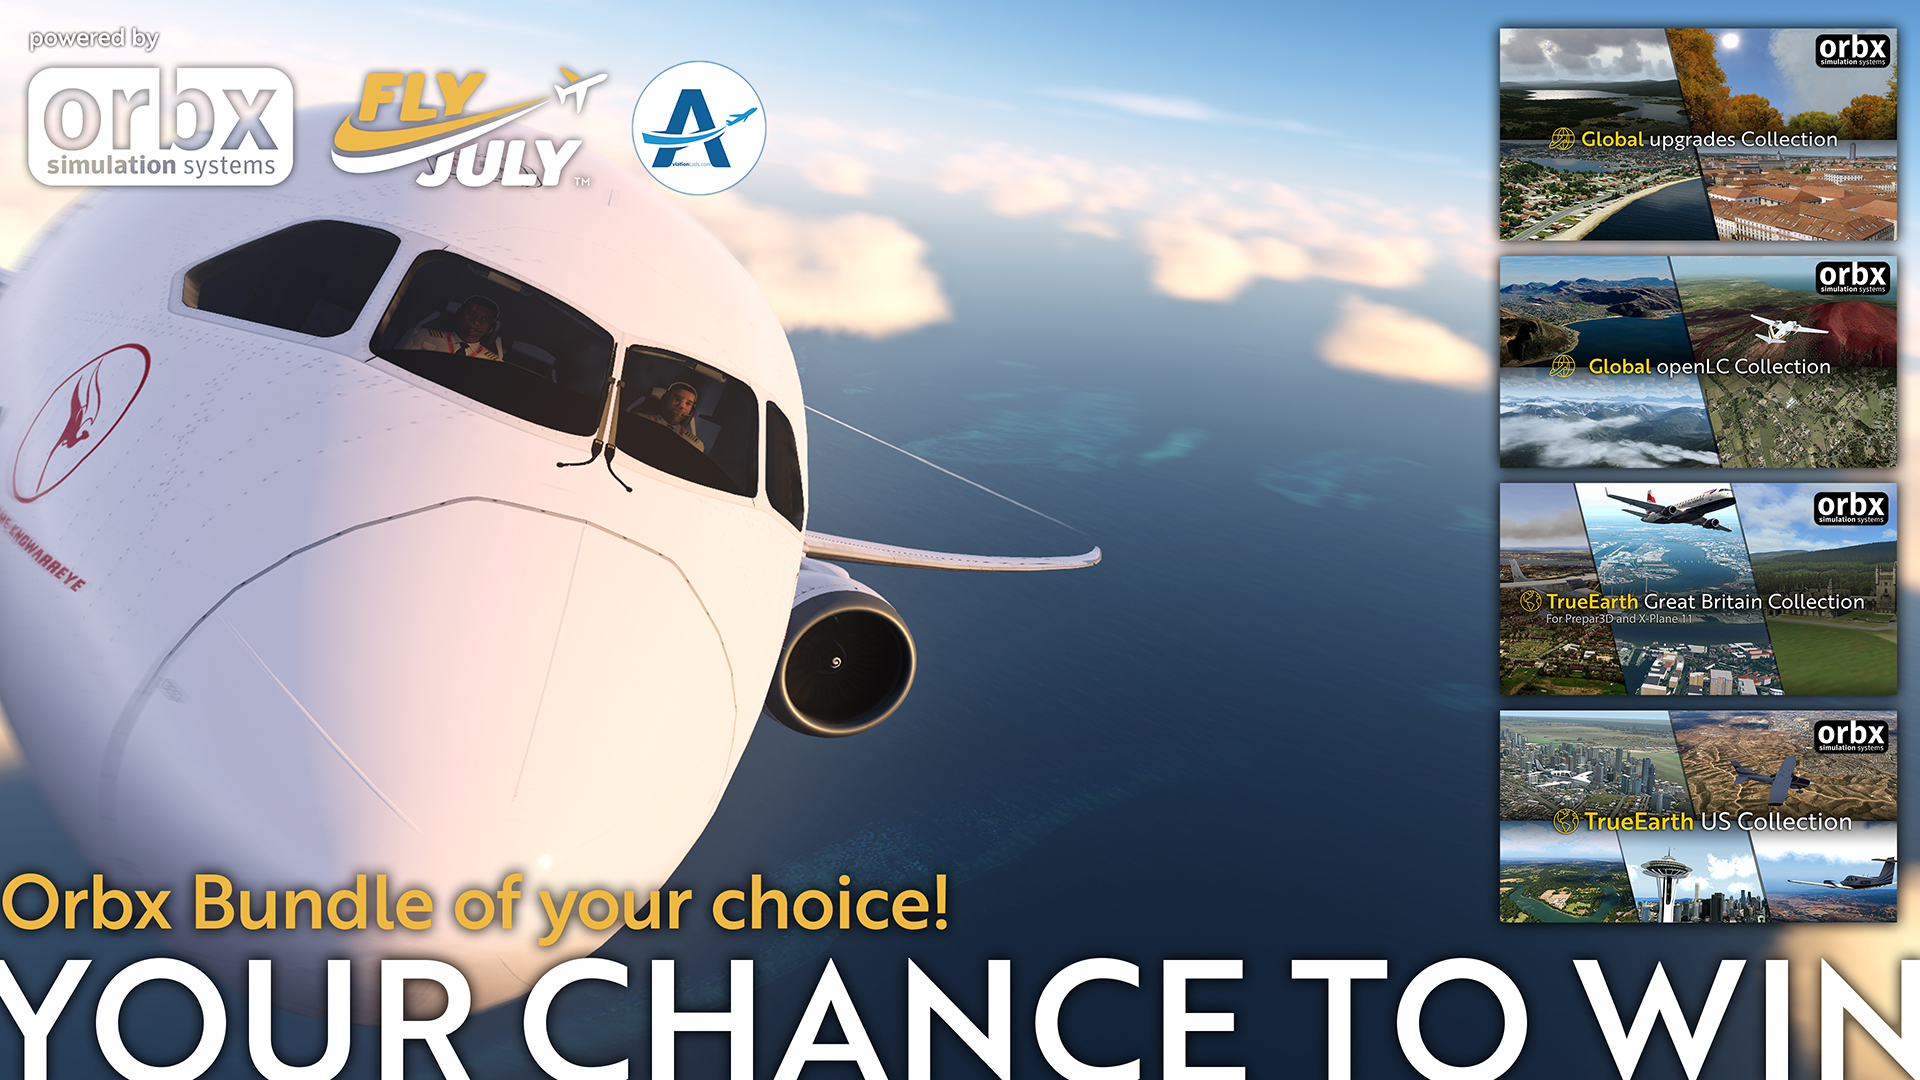 [FLYJULY] WIN AN ORBX BUNDLE